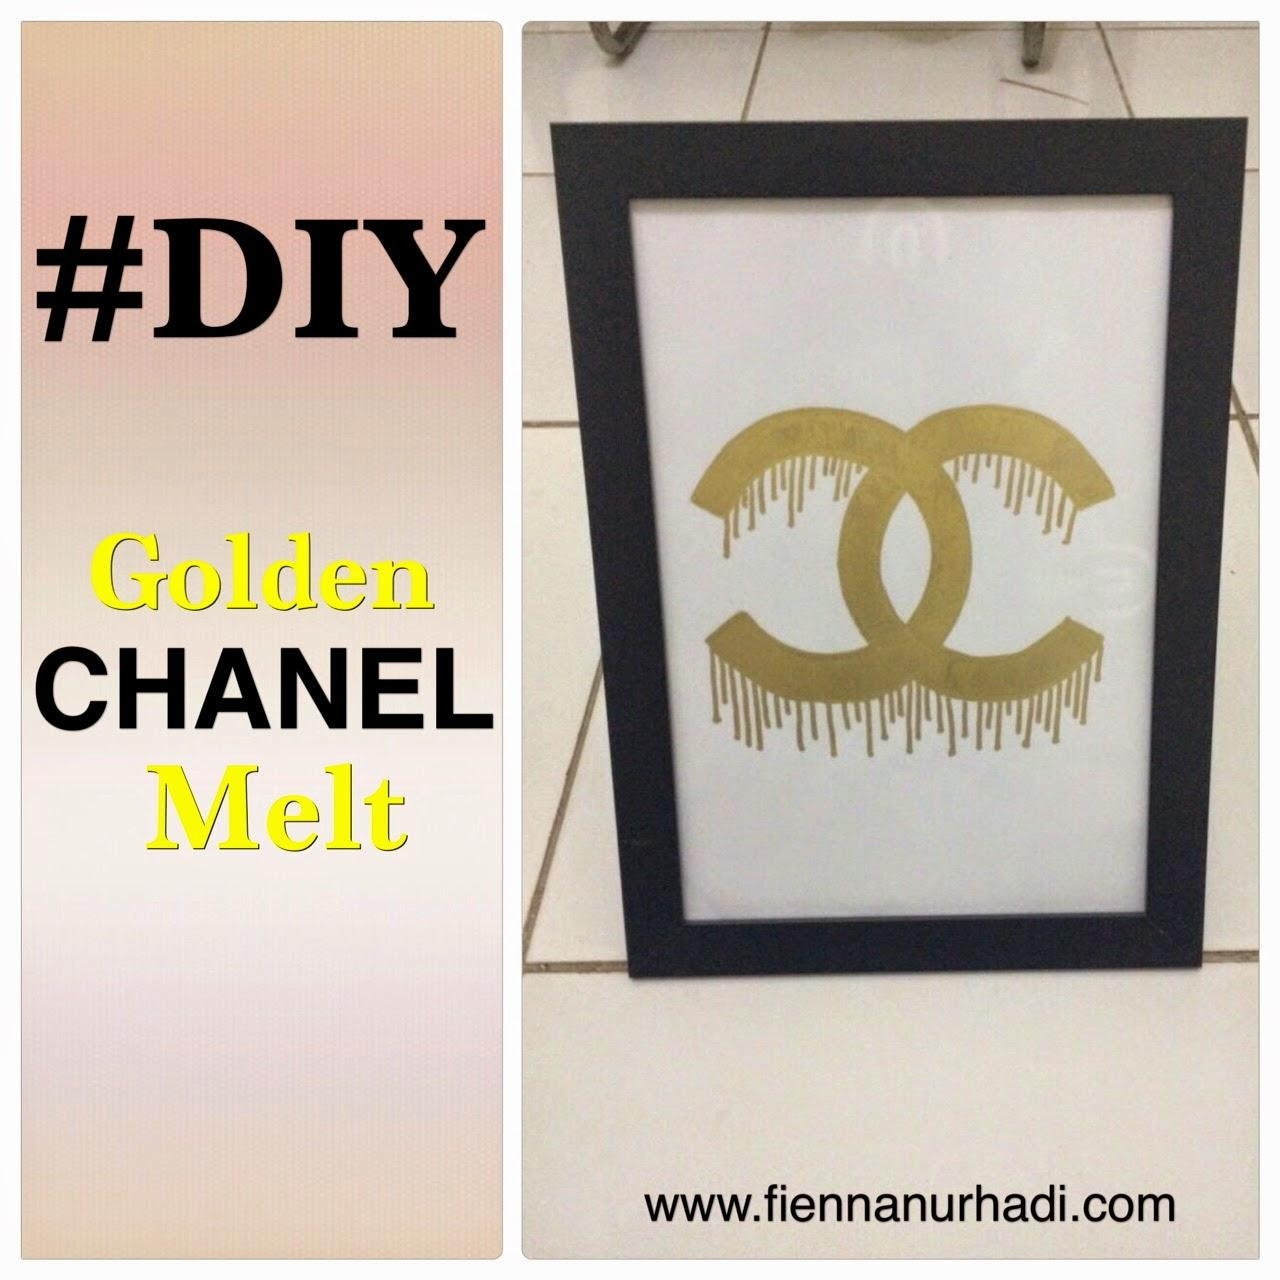 Diy Gold Chanel Melting Wall Decor | Fienna Nurhadi's Blog With Regard To Chanel Wall Decor (Image 11 of 20)